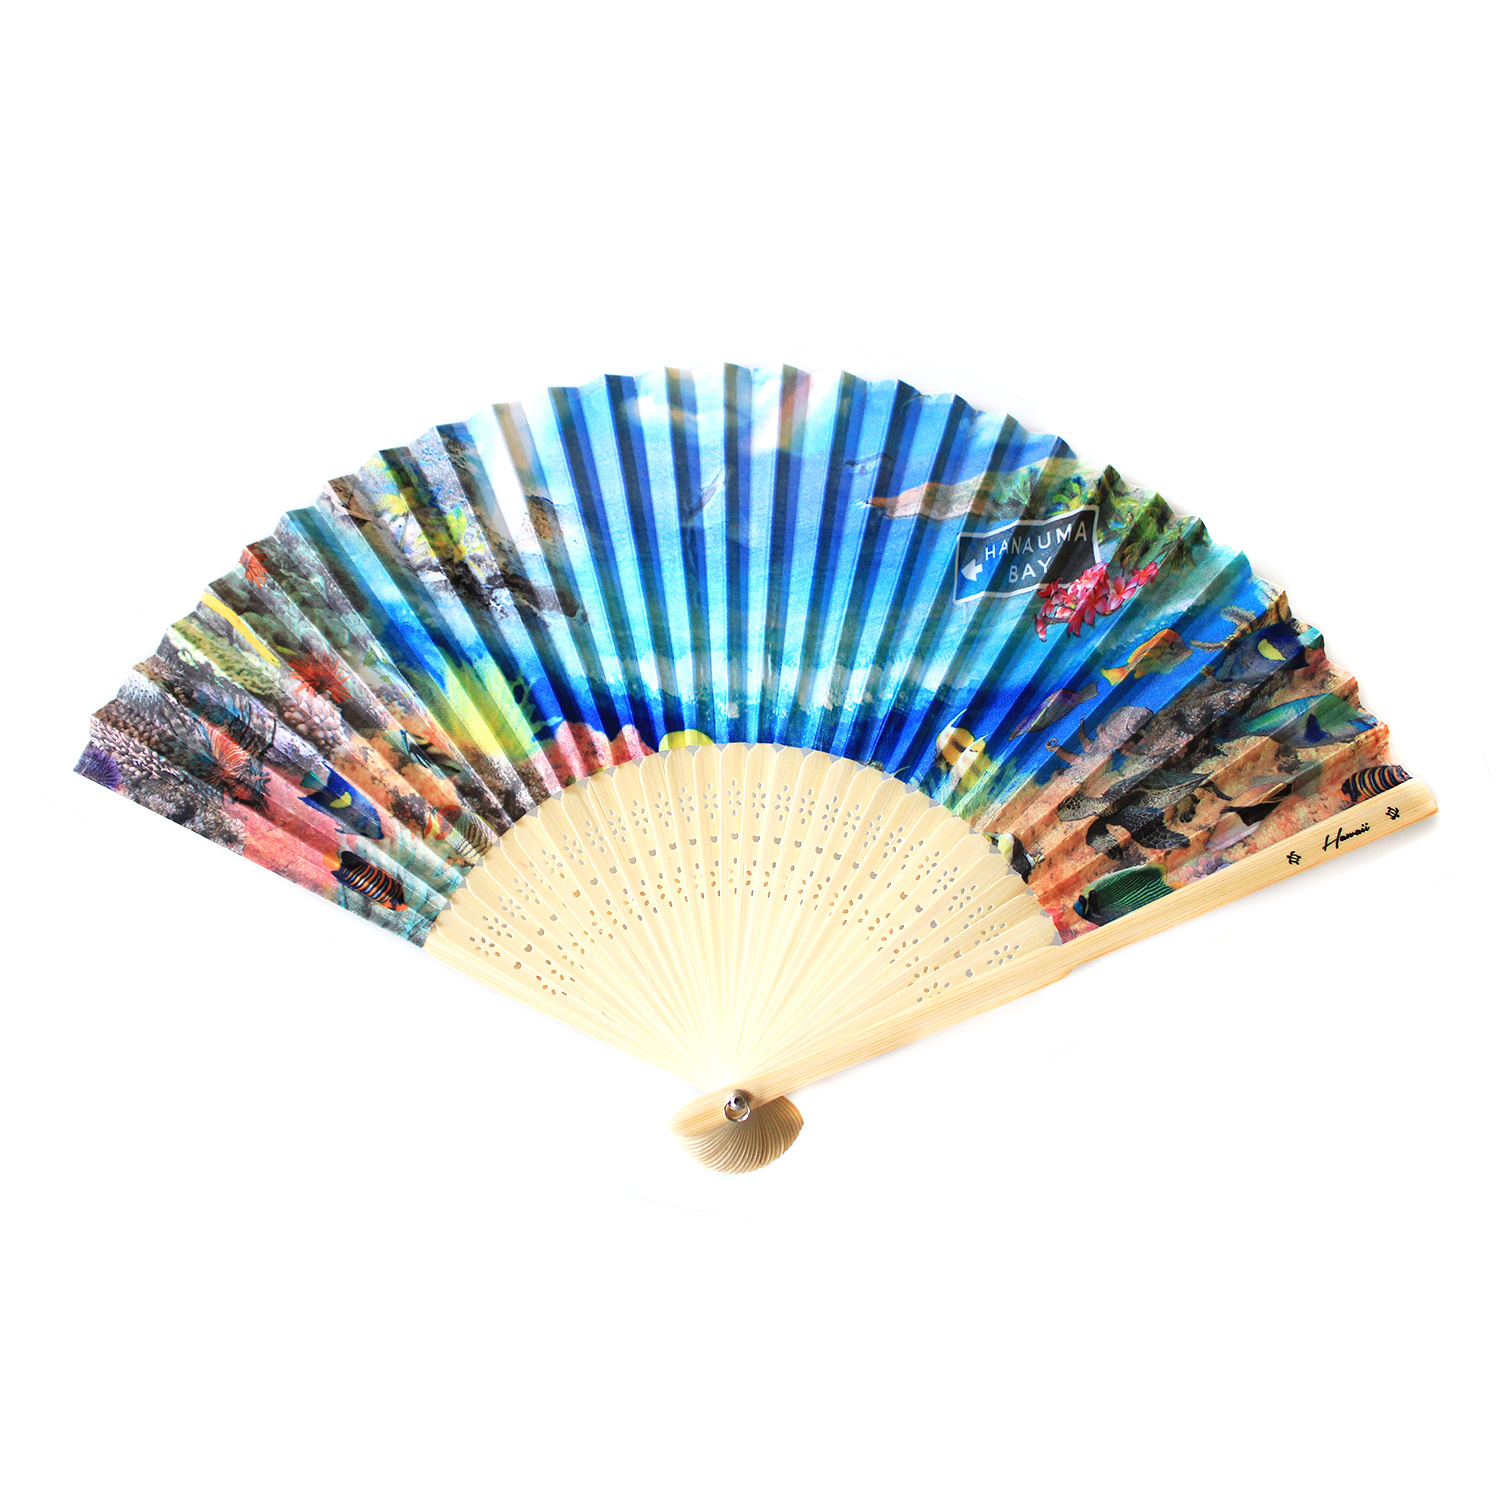 Hawaii Luau Party Favors Wedding Fabric & Wood Folding Hand Fan in Hanauma Bay